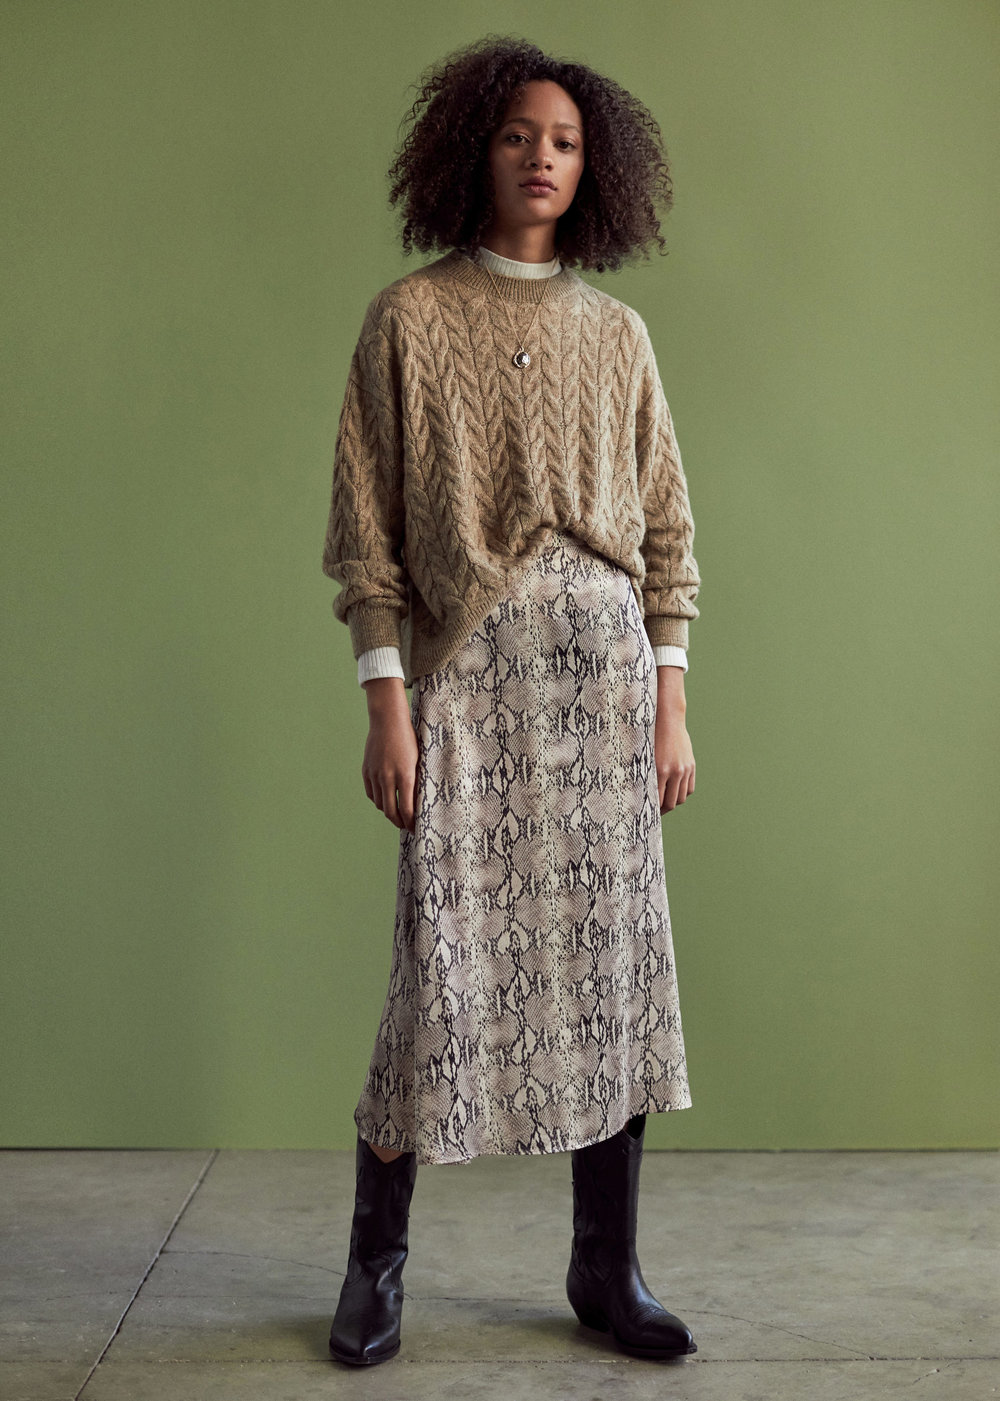 Mango Snake Print Skirt - £35.99 at MangoSlip skirts are a big thing this season and this flowy piece from Mango is a sweet way to nail two trends in one. Also, this styling is ON POINT.